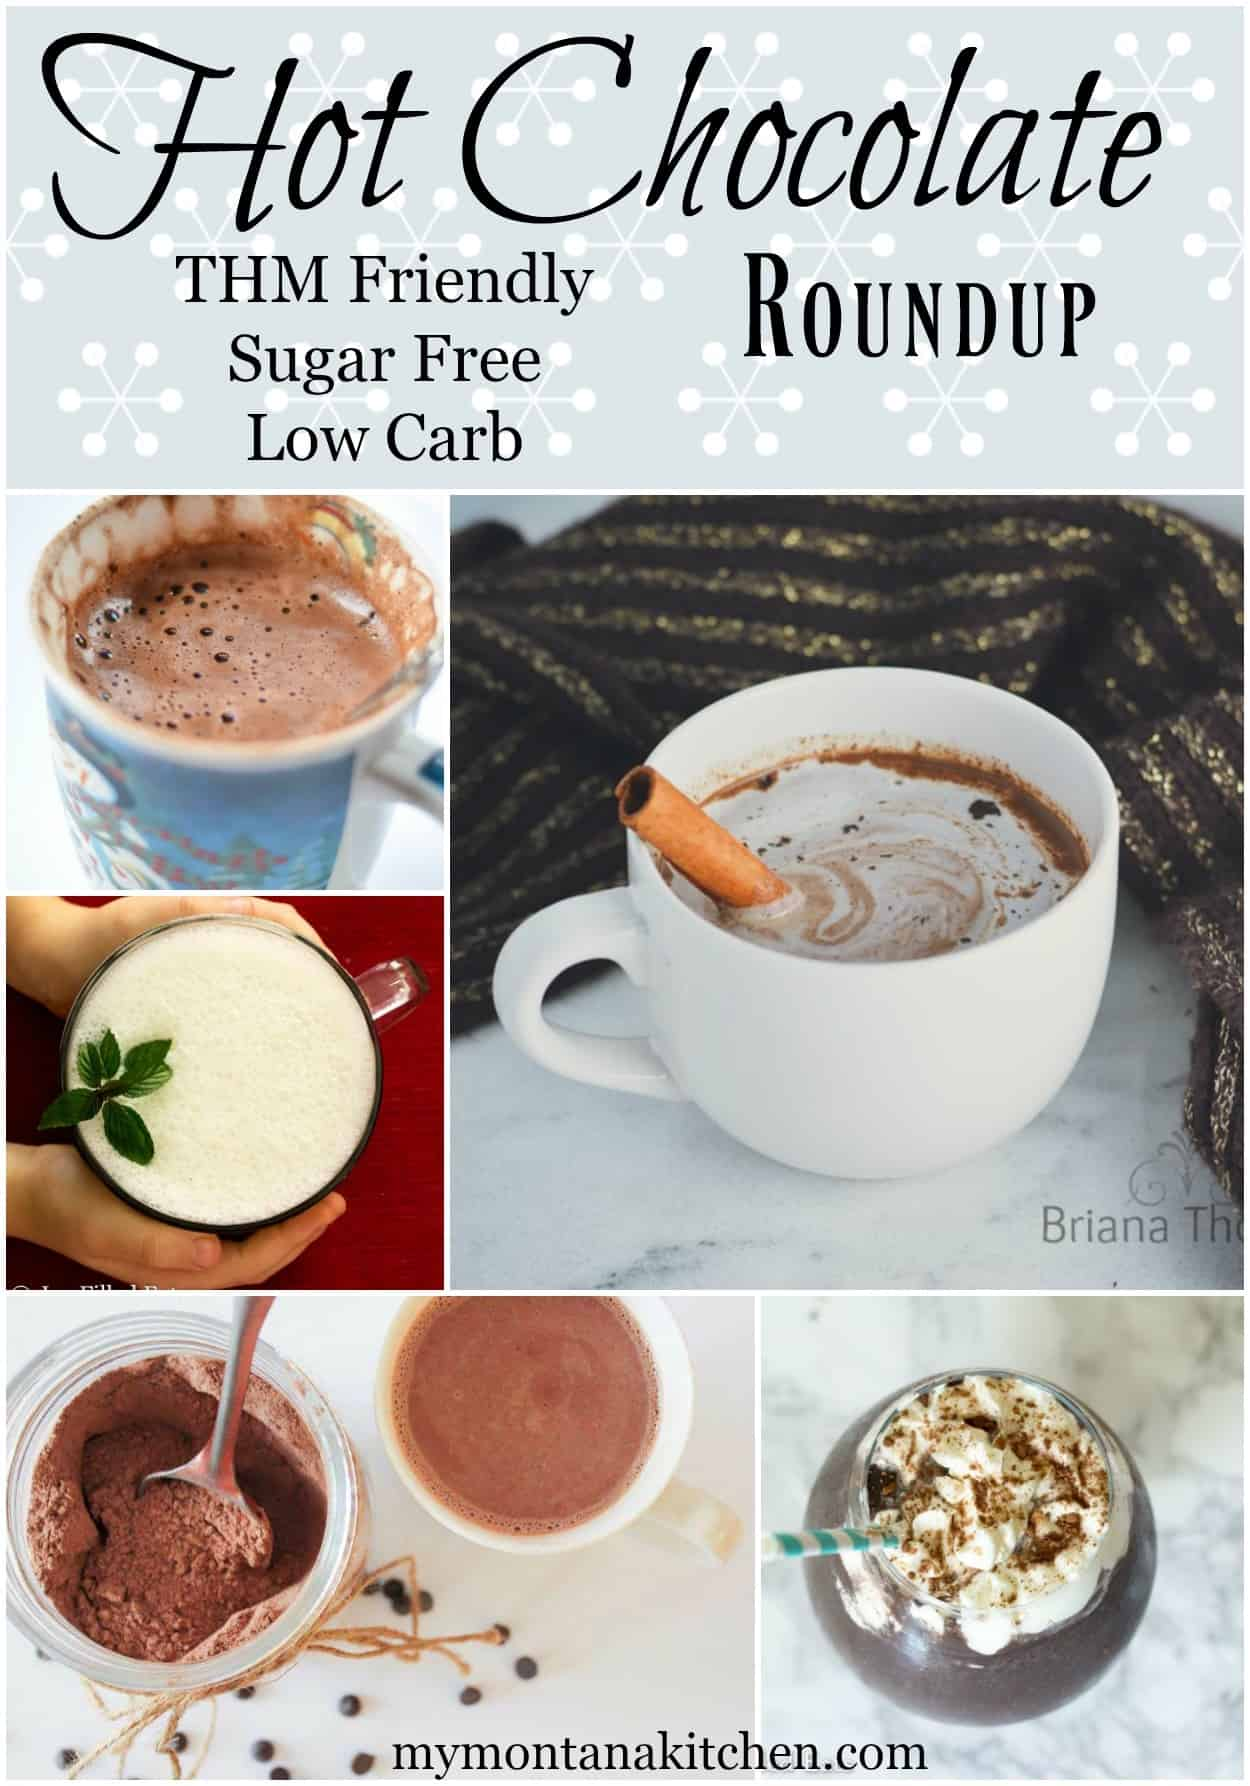 Hot Chocolate Roundup (THM-Friendly, Low Carb, Sugar Free)